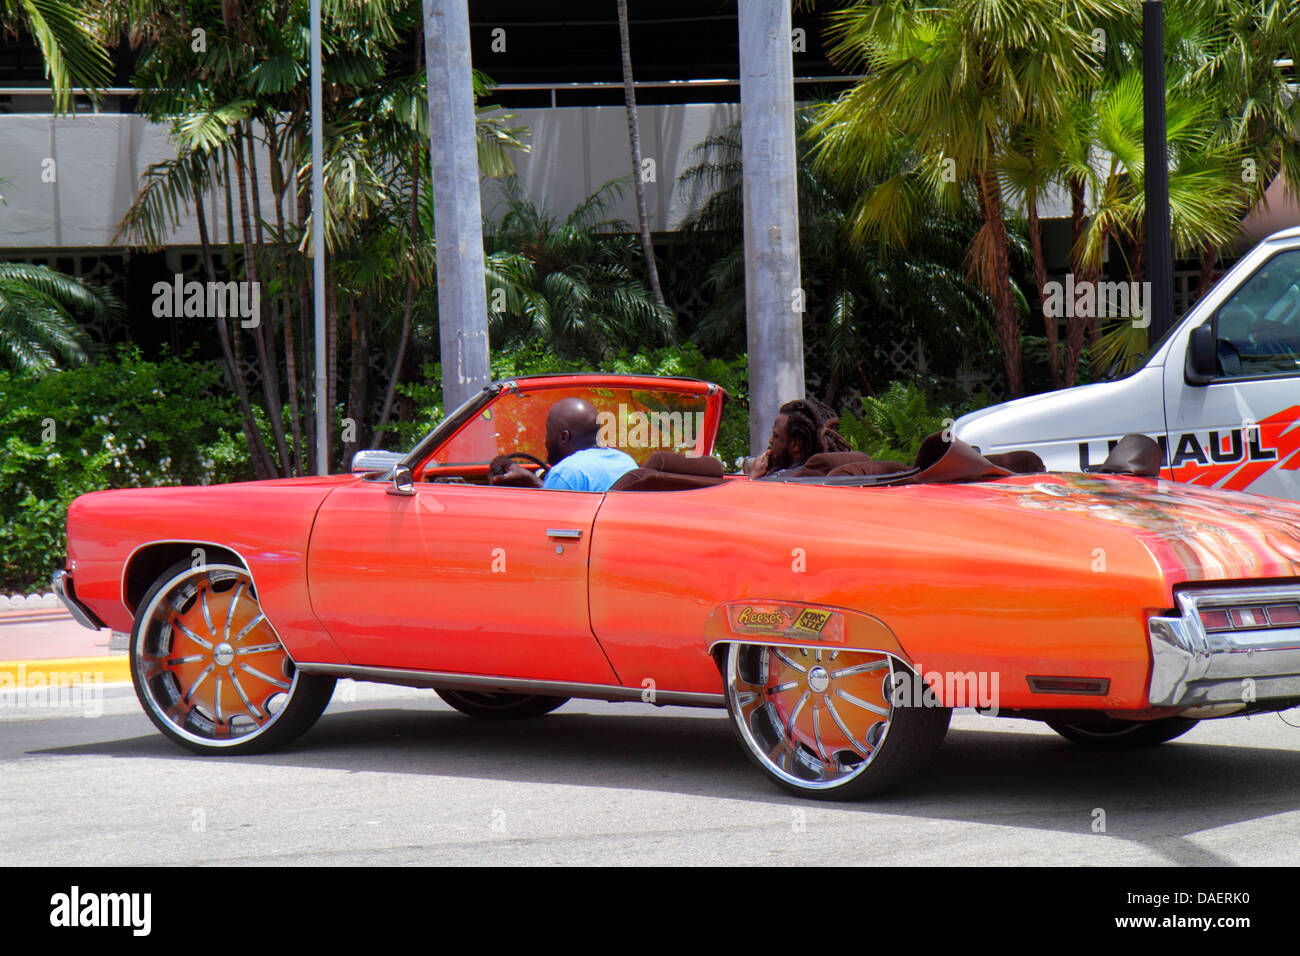 Pimped Car Stock Photos Pimped Car Stock Images Alamy